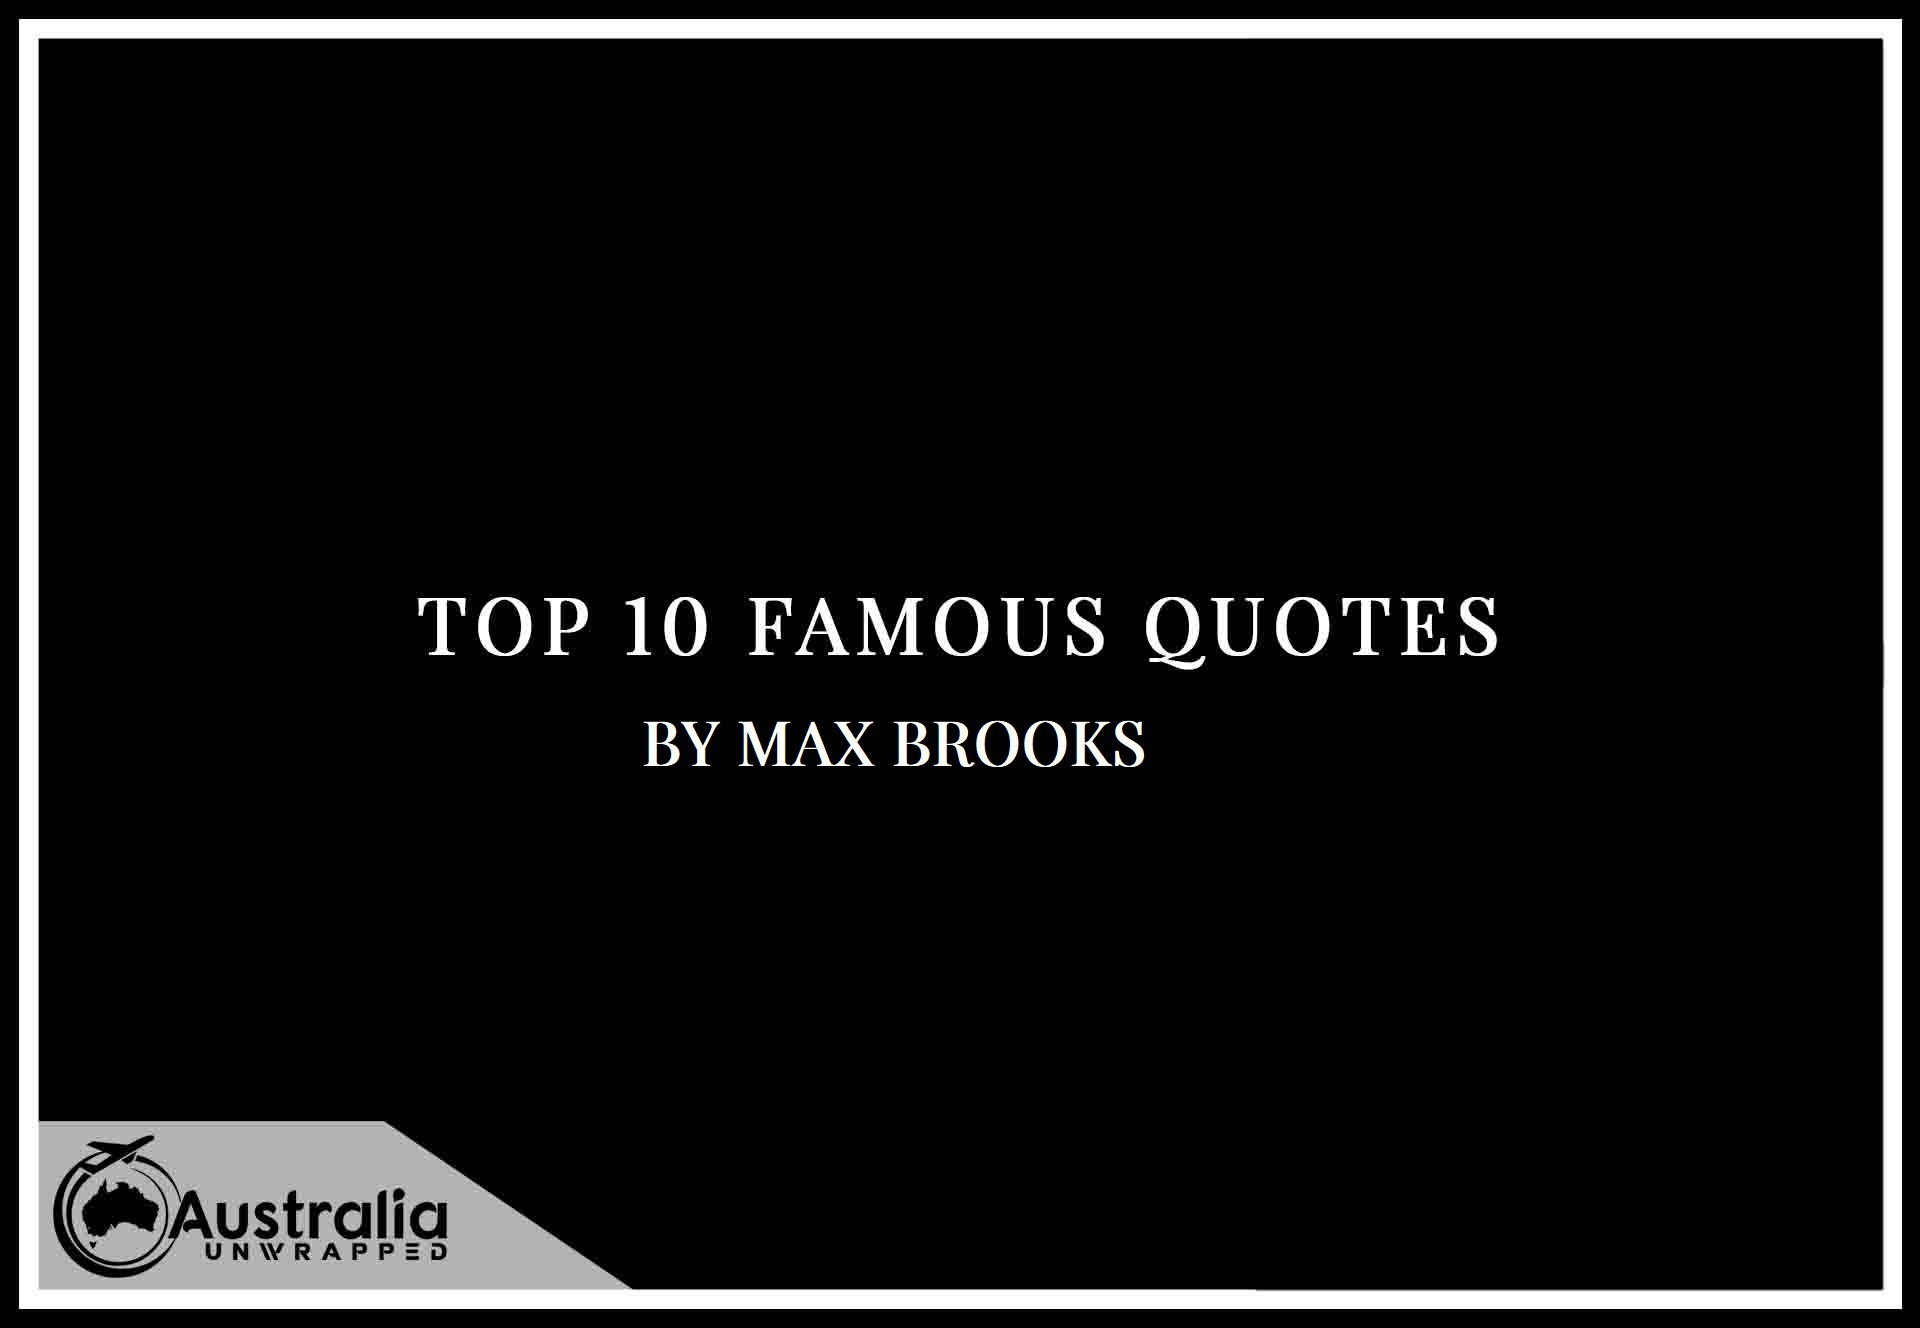 Top 10 Famous Quotes by Author Max Brooks